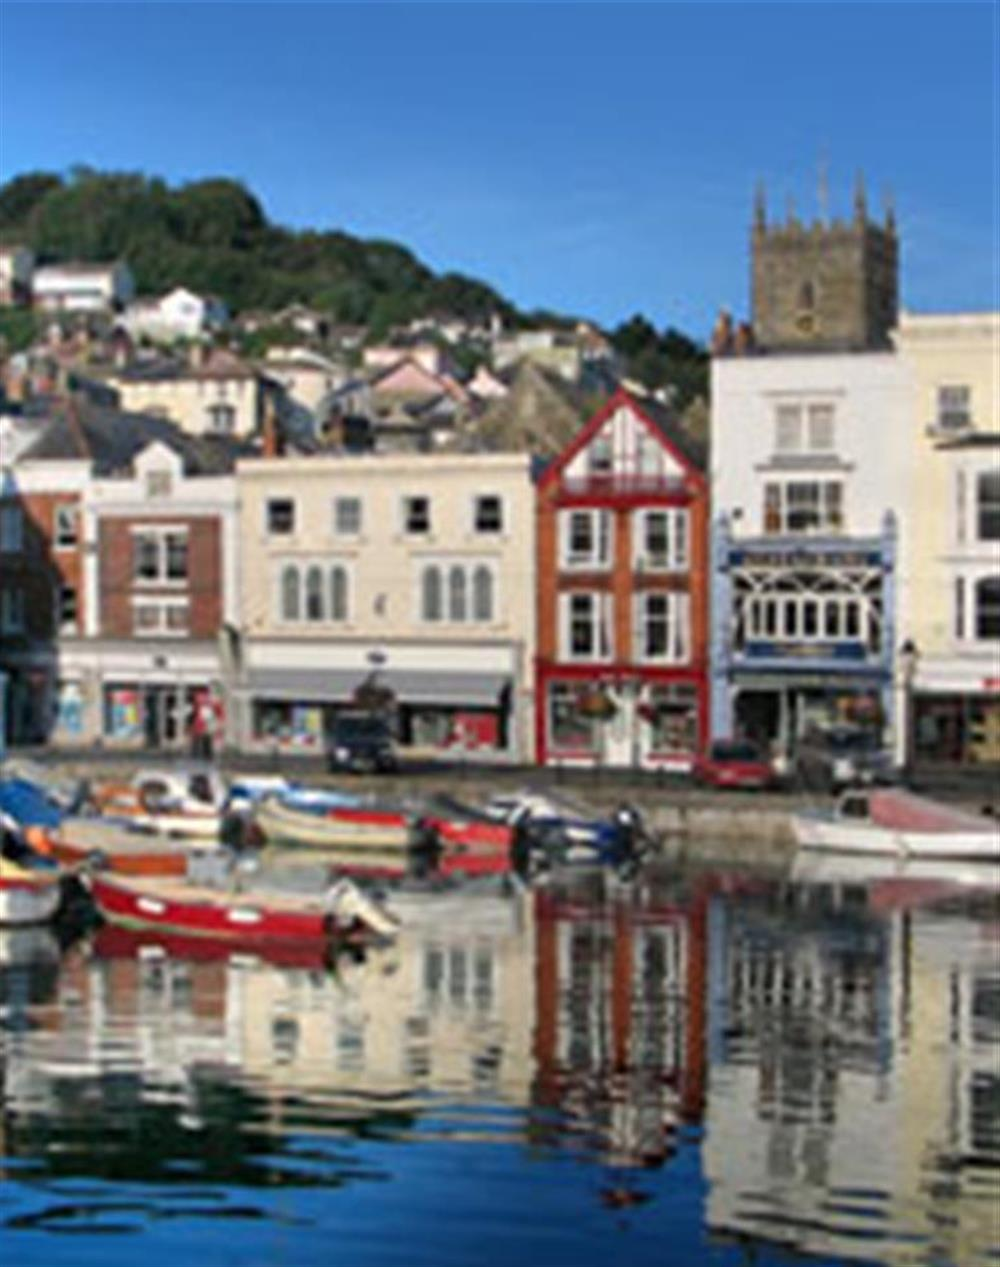 Historic and captivating Dartmouth, 20 minutes away at 2 South View Terrace, Slapton